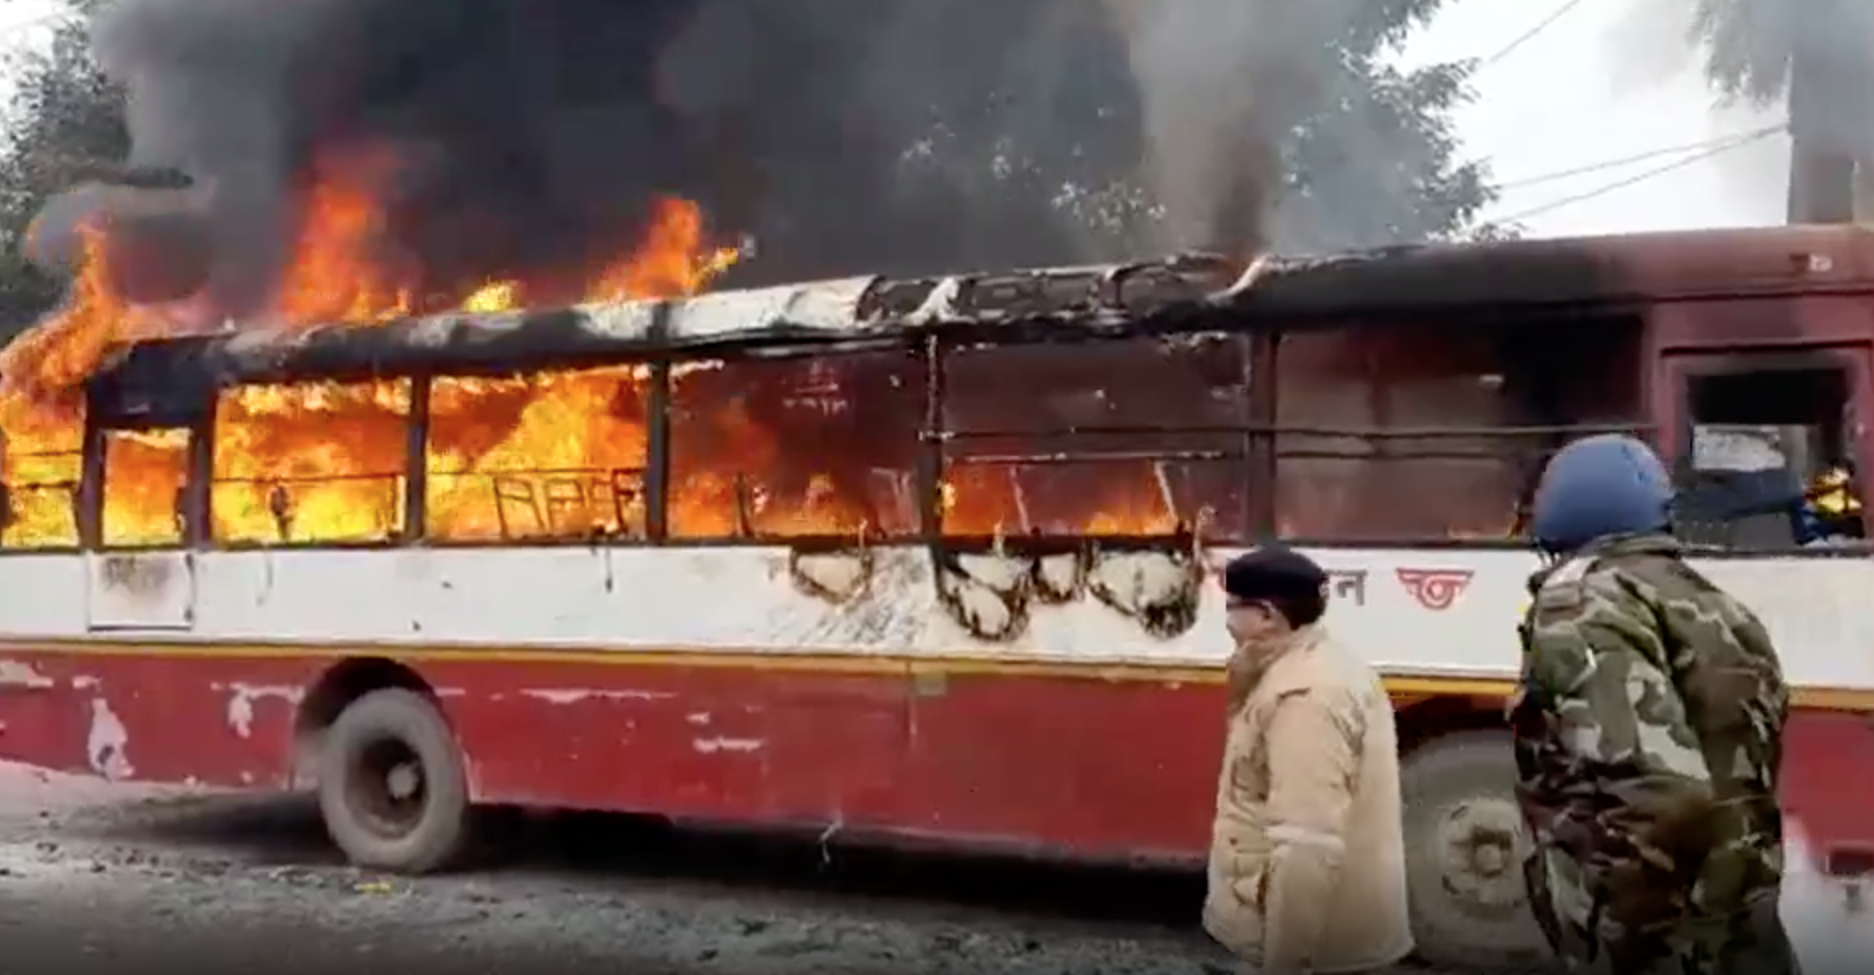 A bus burns in Sambhal, a city in Uttar Pradesh.